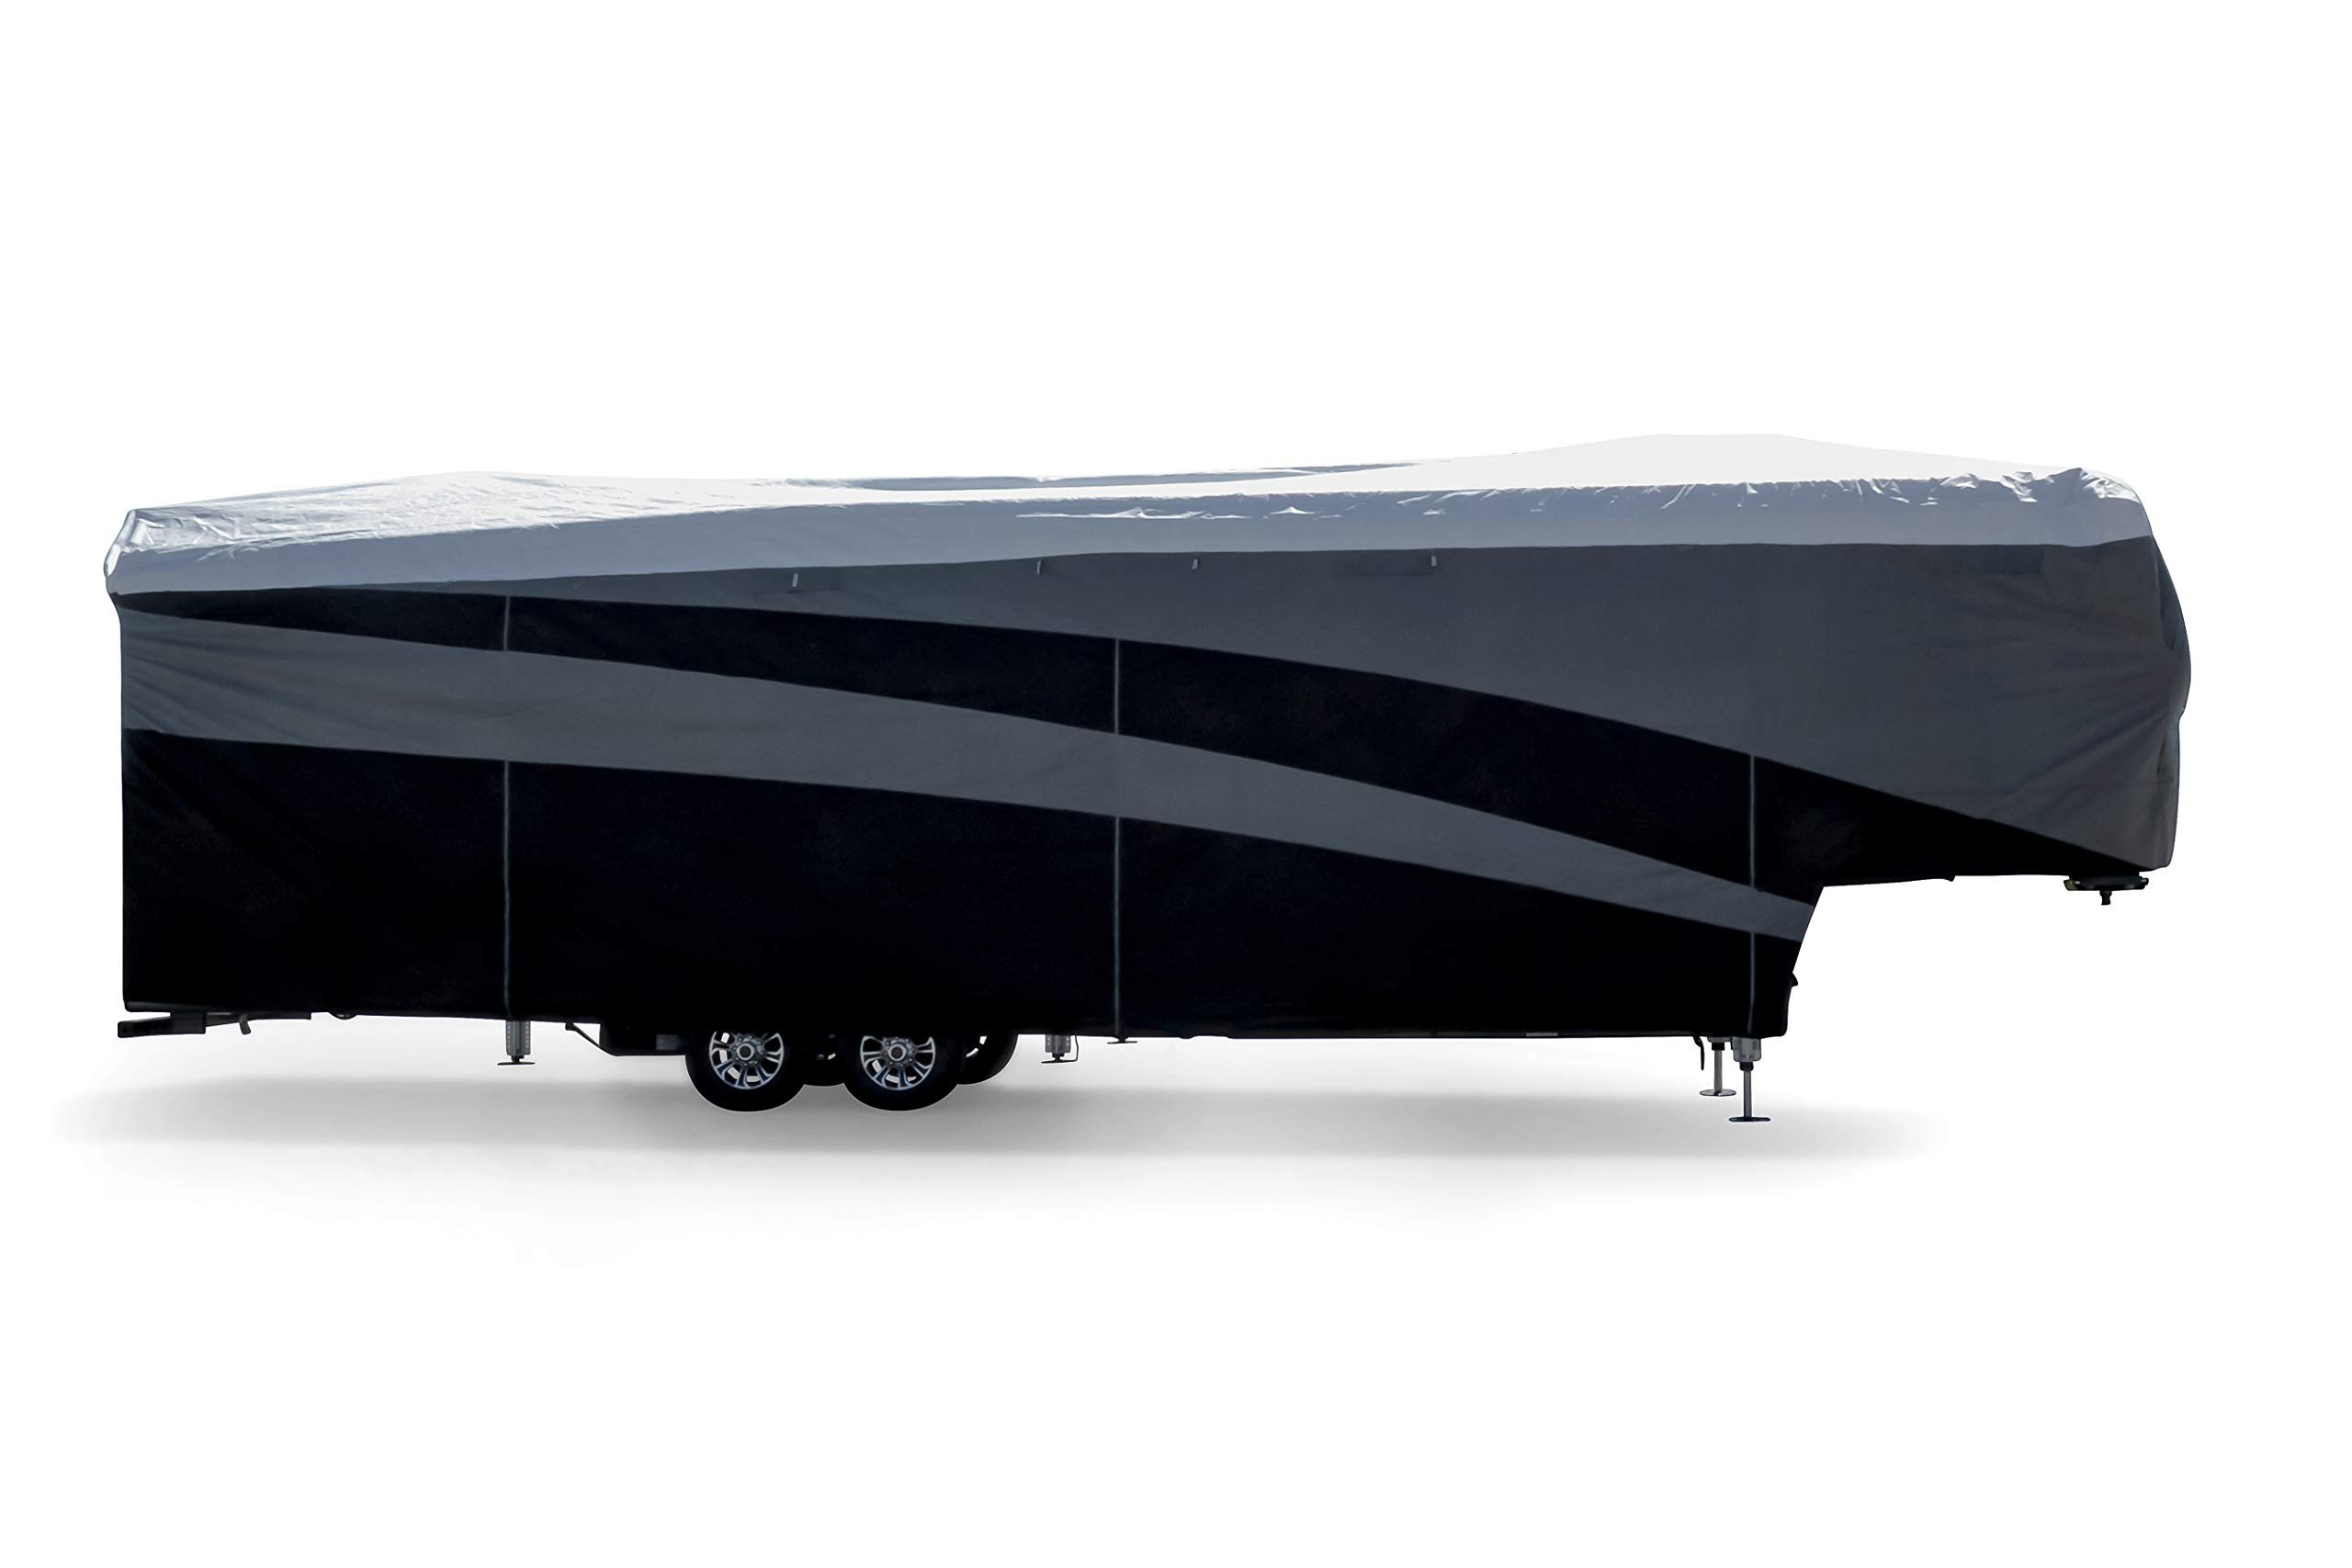 Camco ULTRAGuard Supreme RV Cover-Extremely Durable Design Fits Fifth Wheel Trailers 34' -37', Weatherproof with UV Protection and Dupont Tyvek Top (56150) by Camco (Image #3)